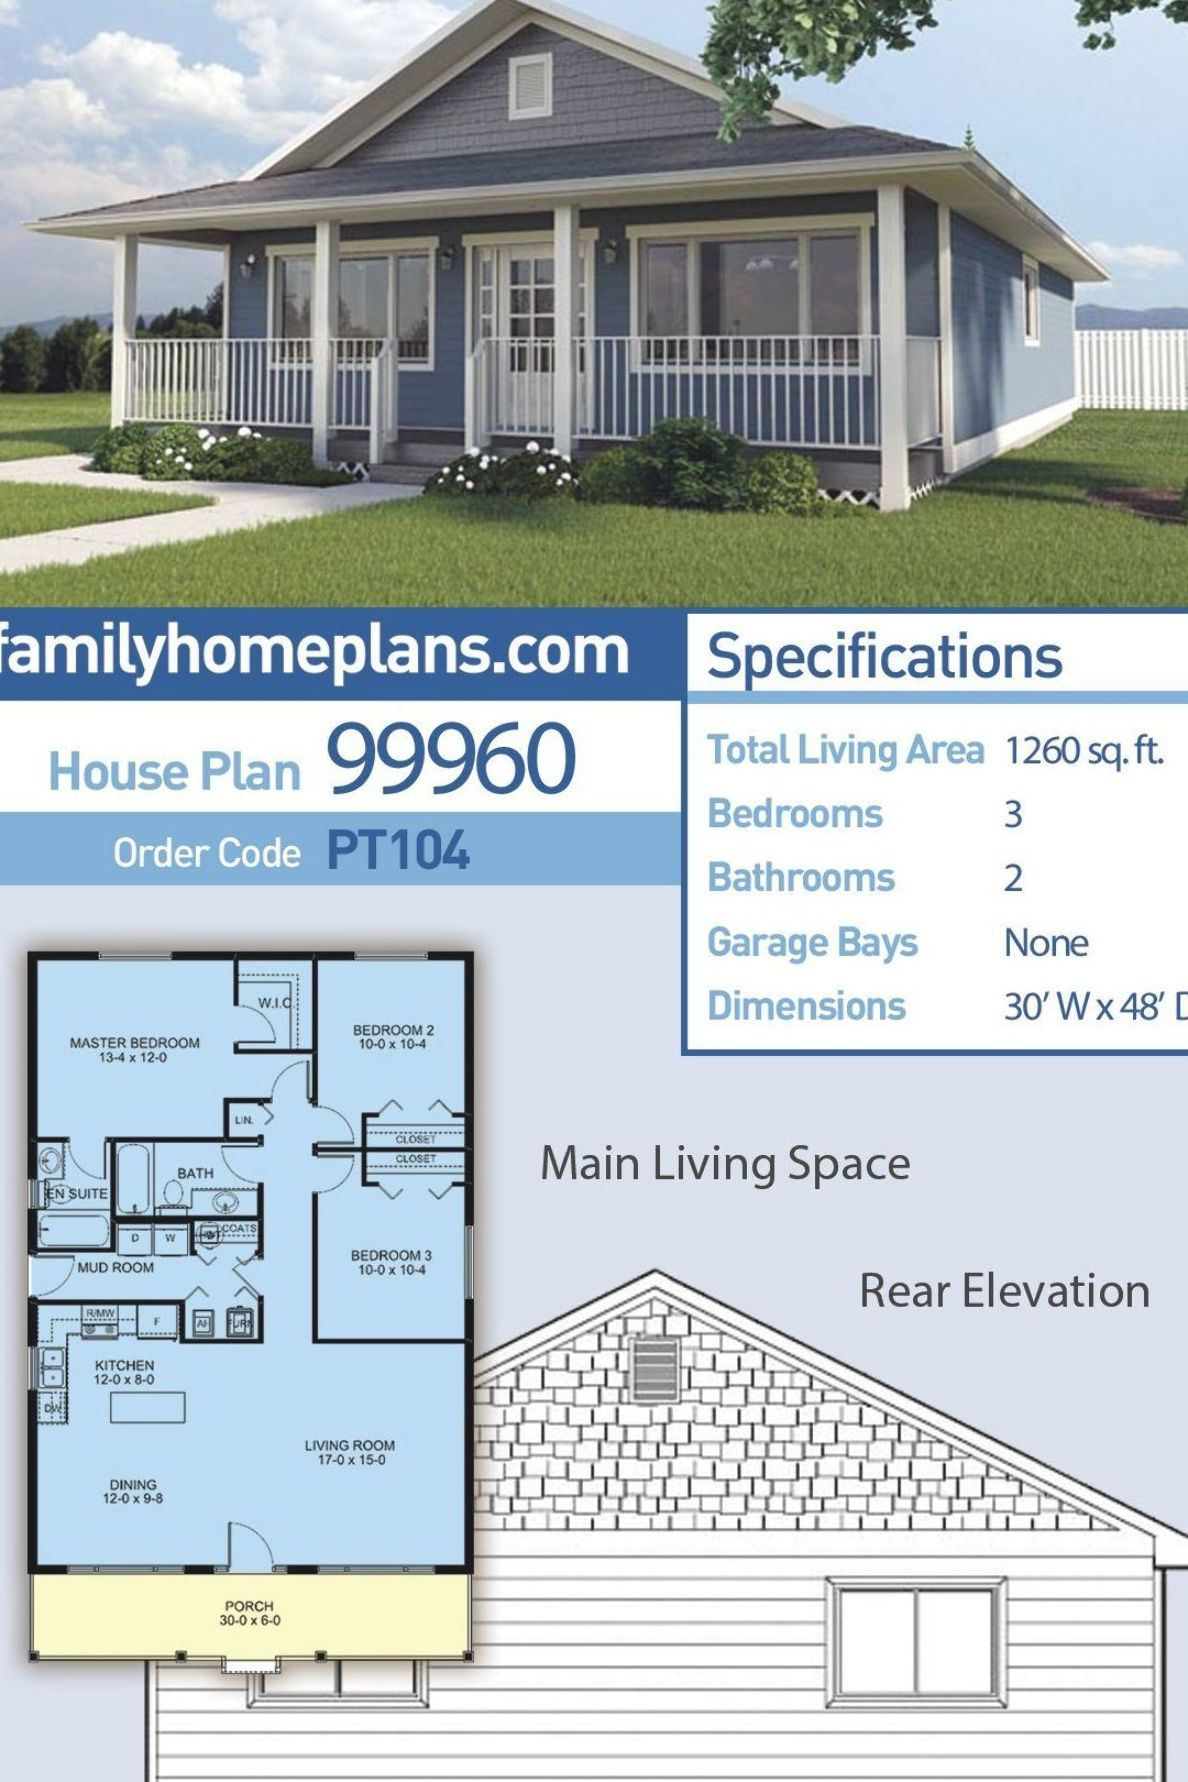 Pin By Felicia Arteaga On New Home Inspiration In 2020 Ranch Style House Plans Narrow Lot House Plans Narrow Lot House